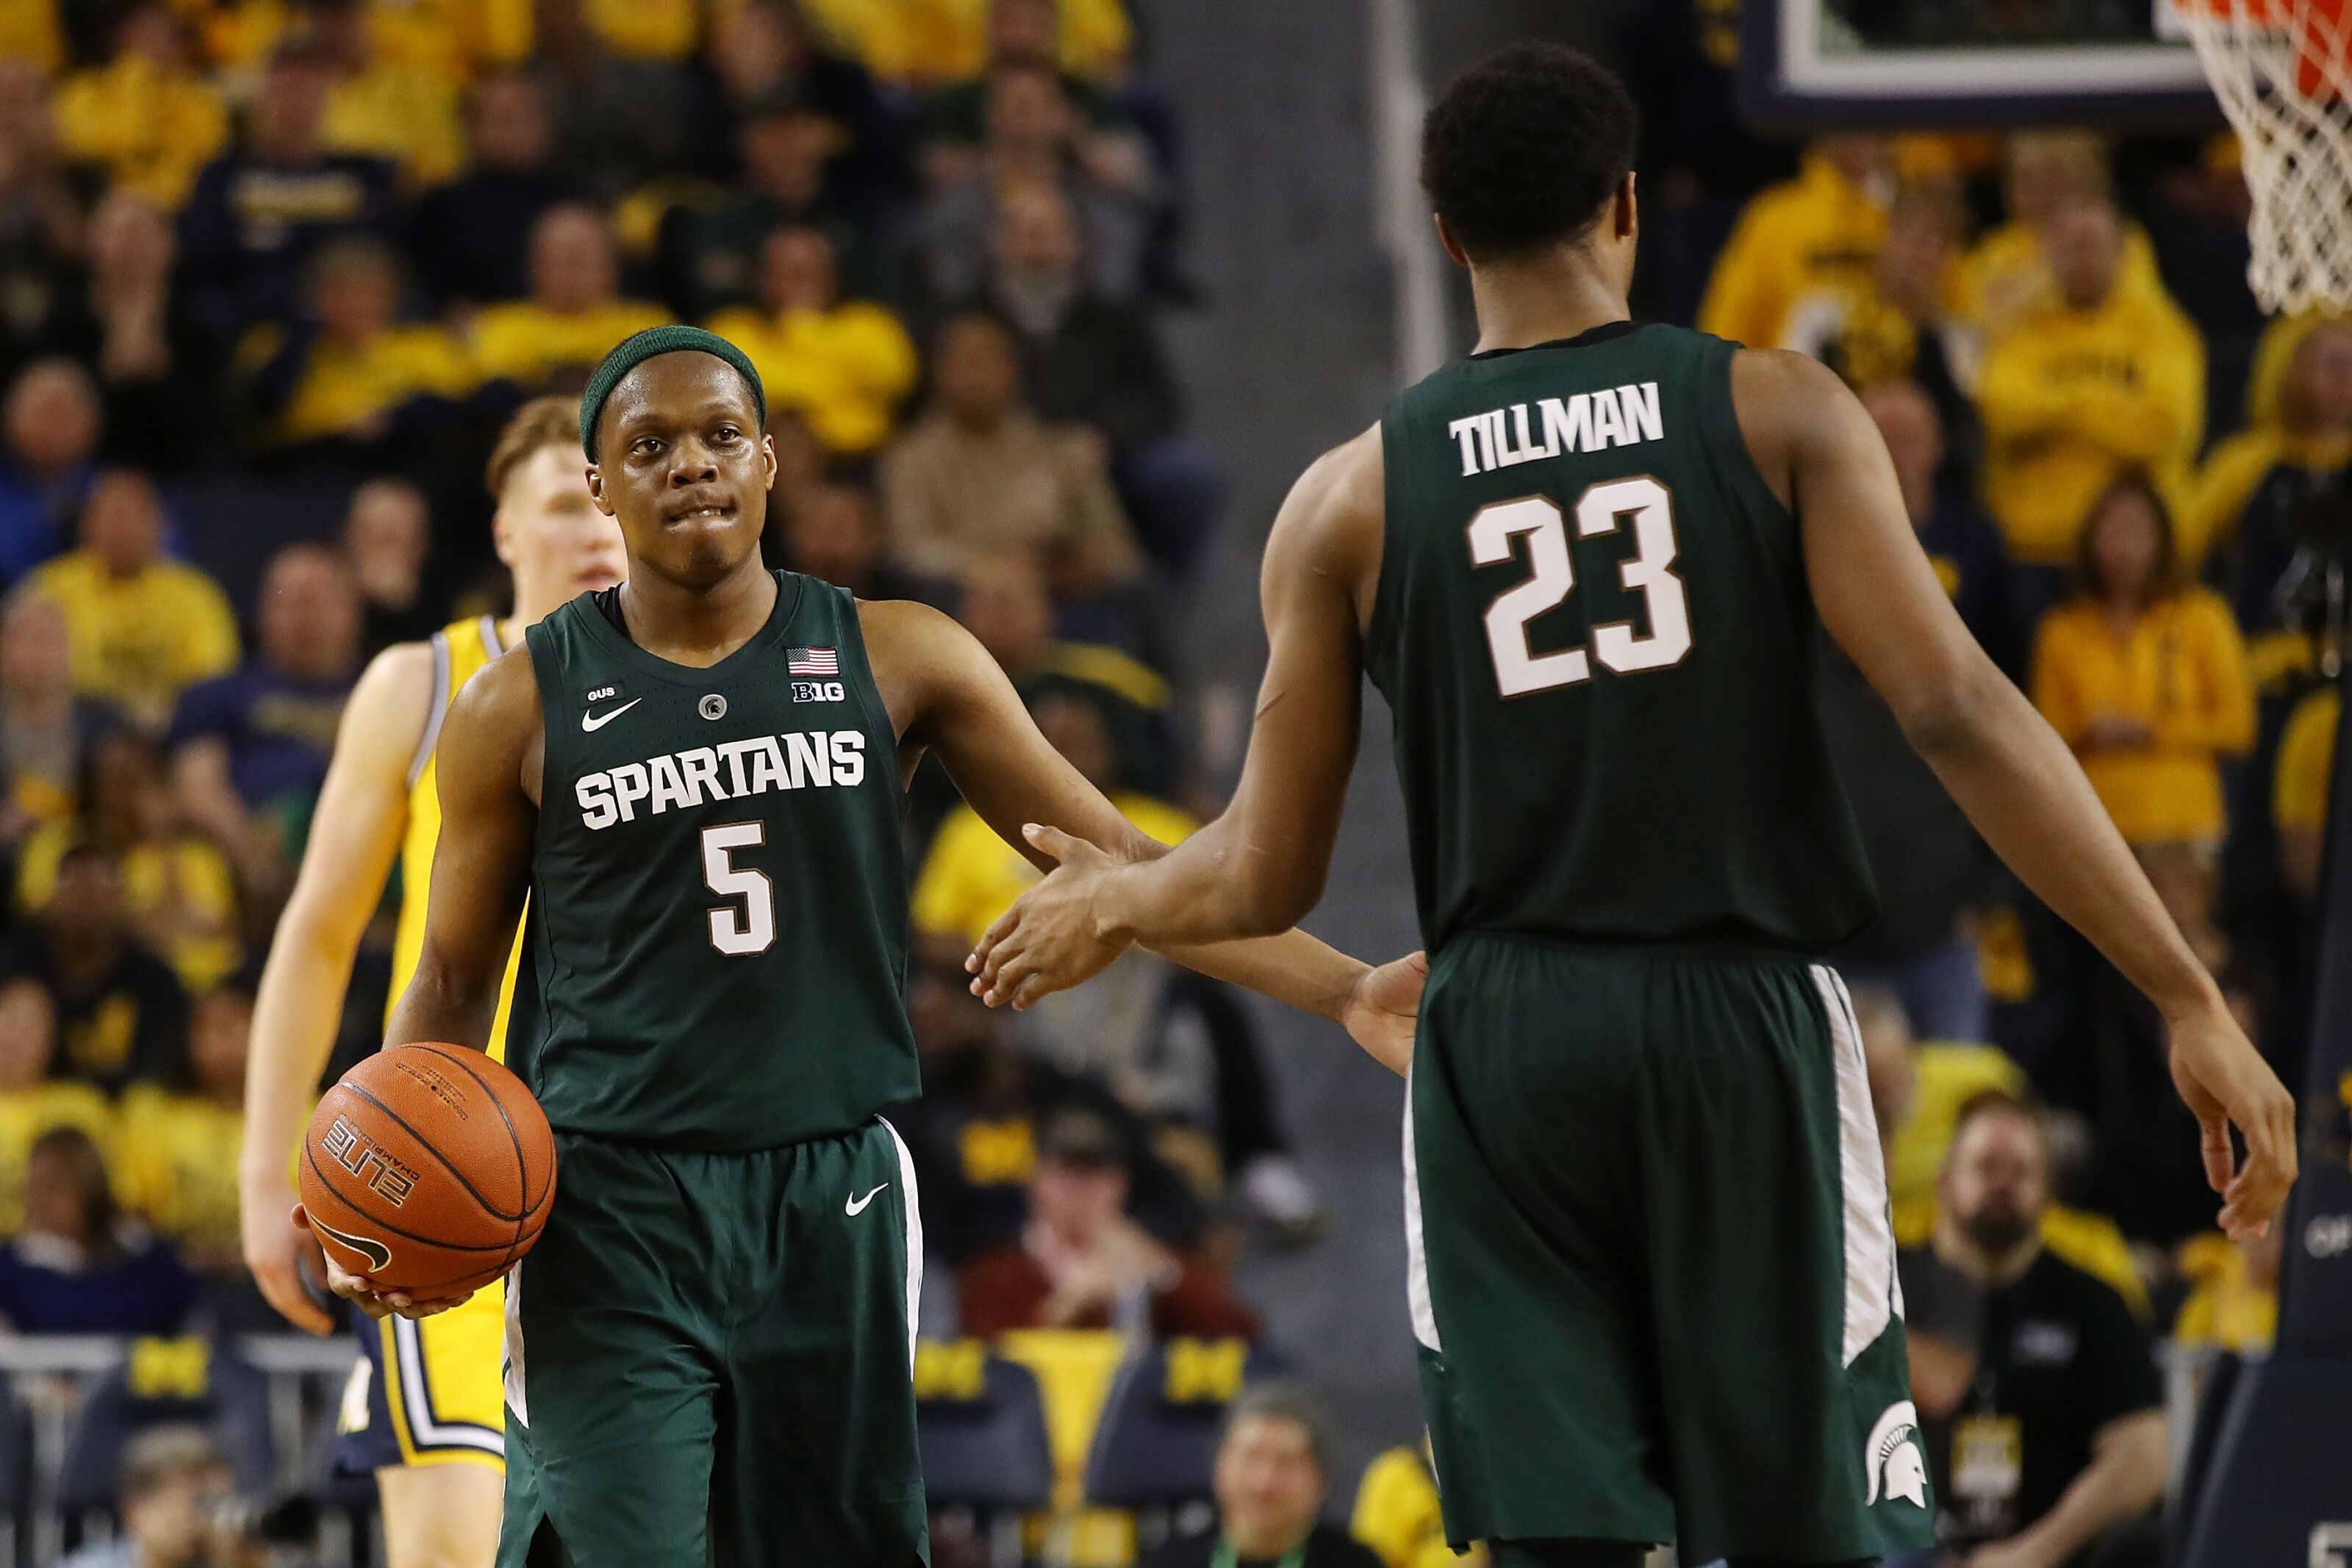 Michigan State Basketball: Breaking down loaded roster for 2019-20